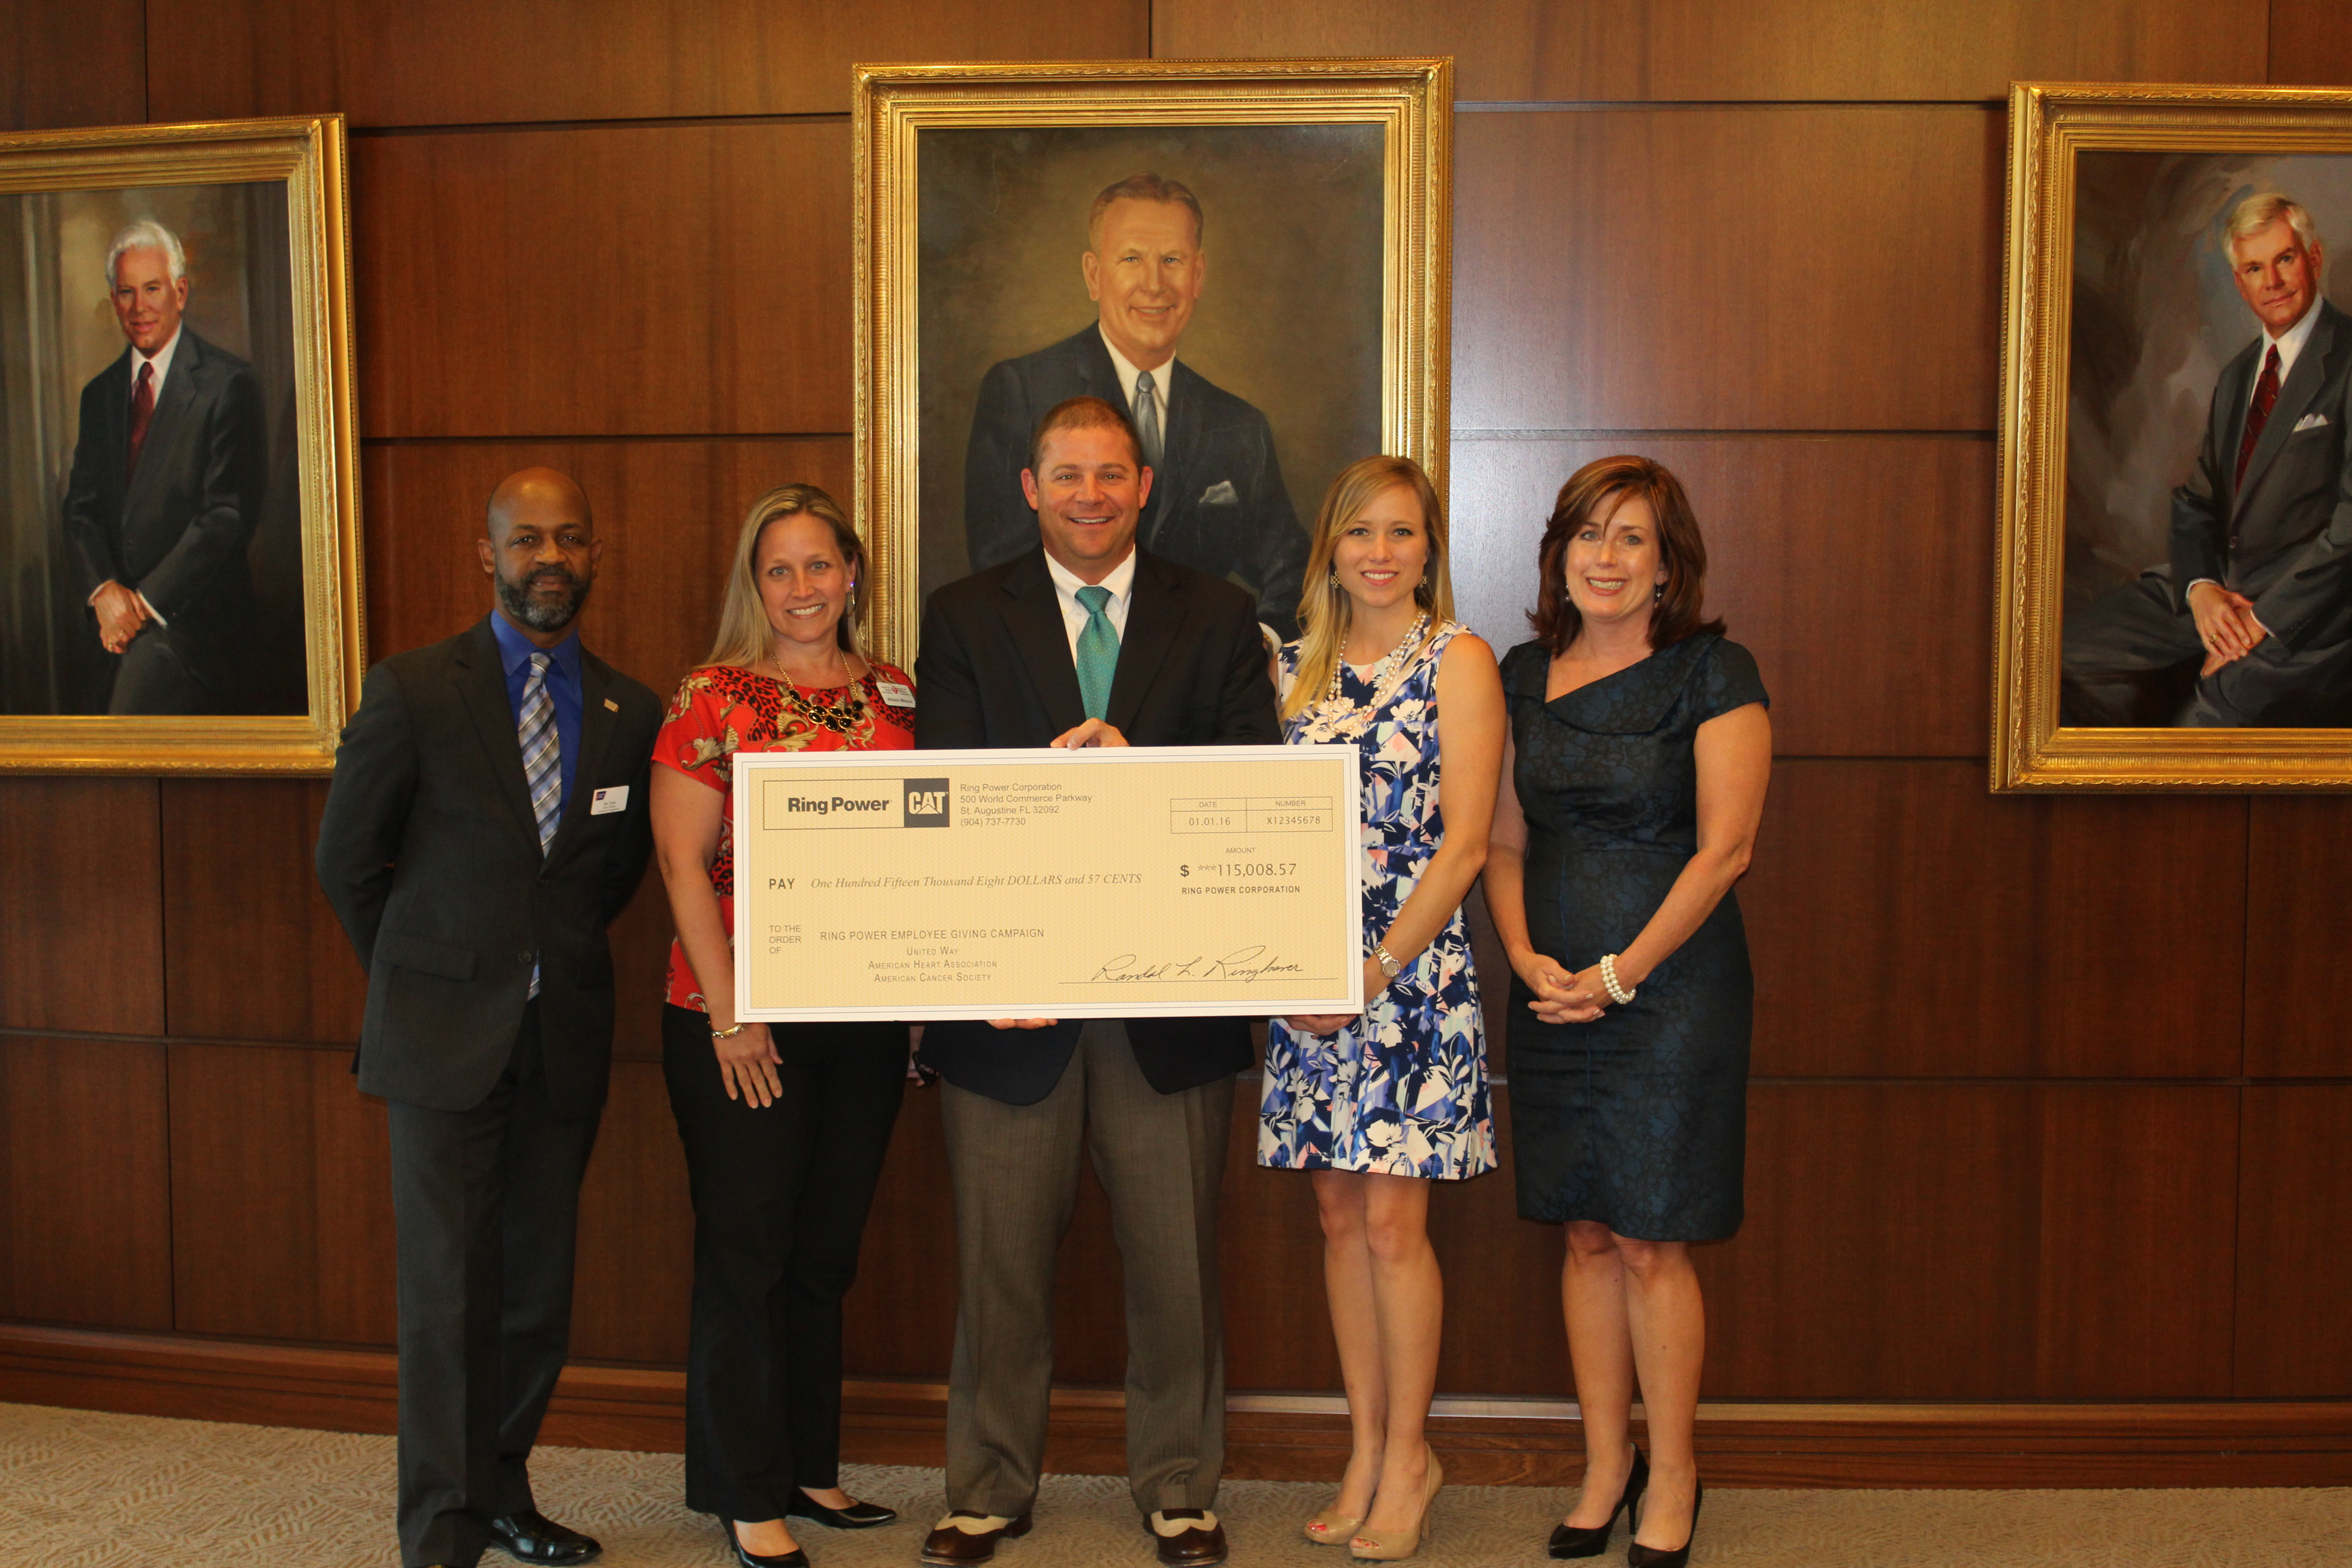 Pictured left to right: Mel Toran of the American Cancer Society, Allison Misora of the American Heart Association, David Alban, Victoria Reynolds and Melissa Nelson of the United Way of St. Johns County.